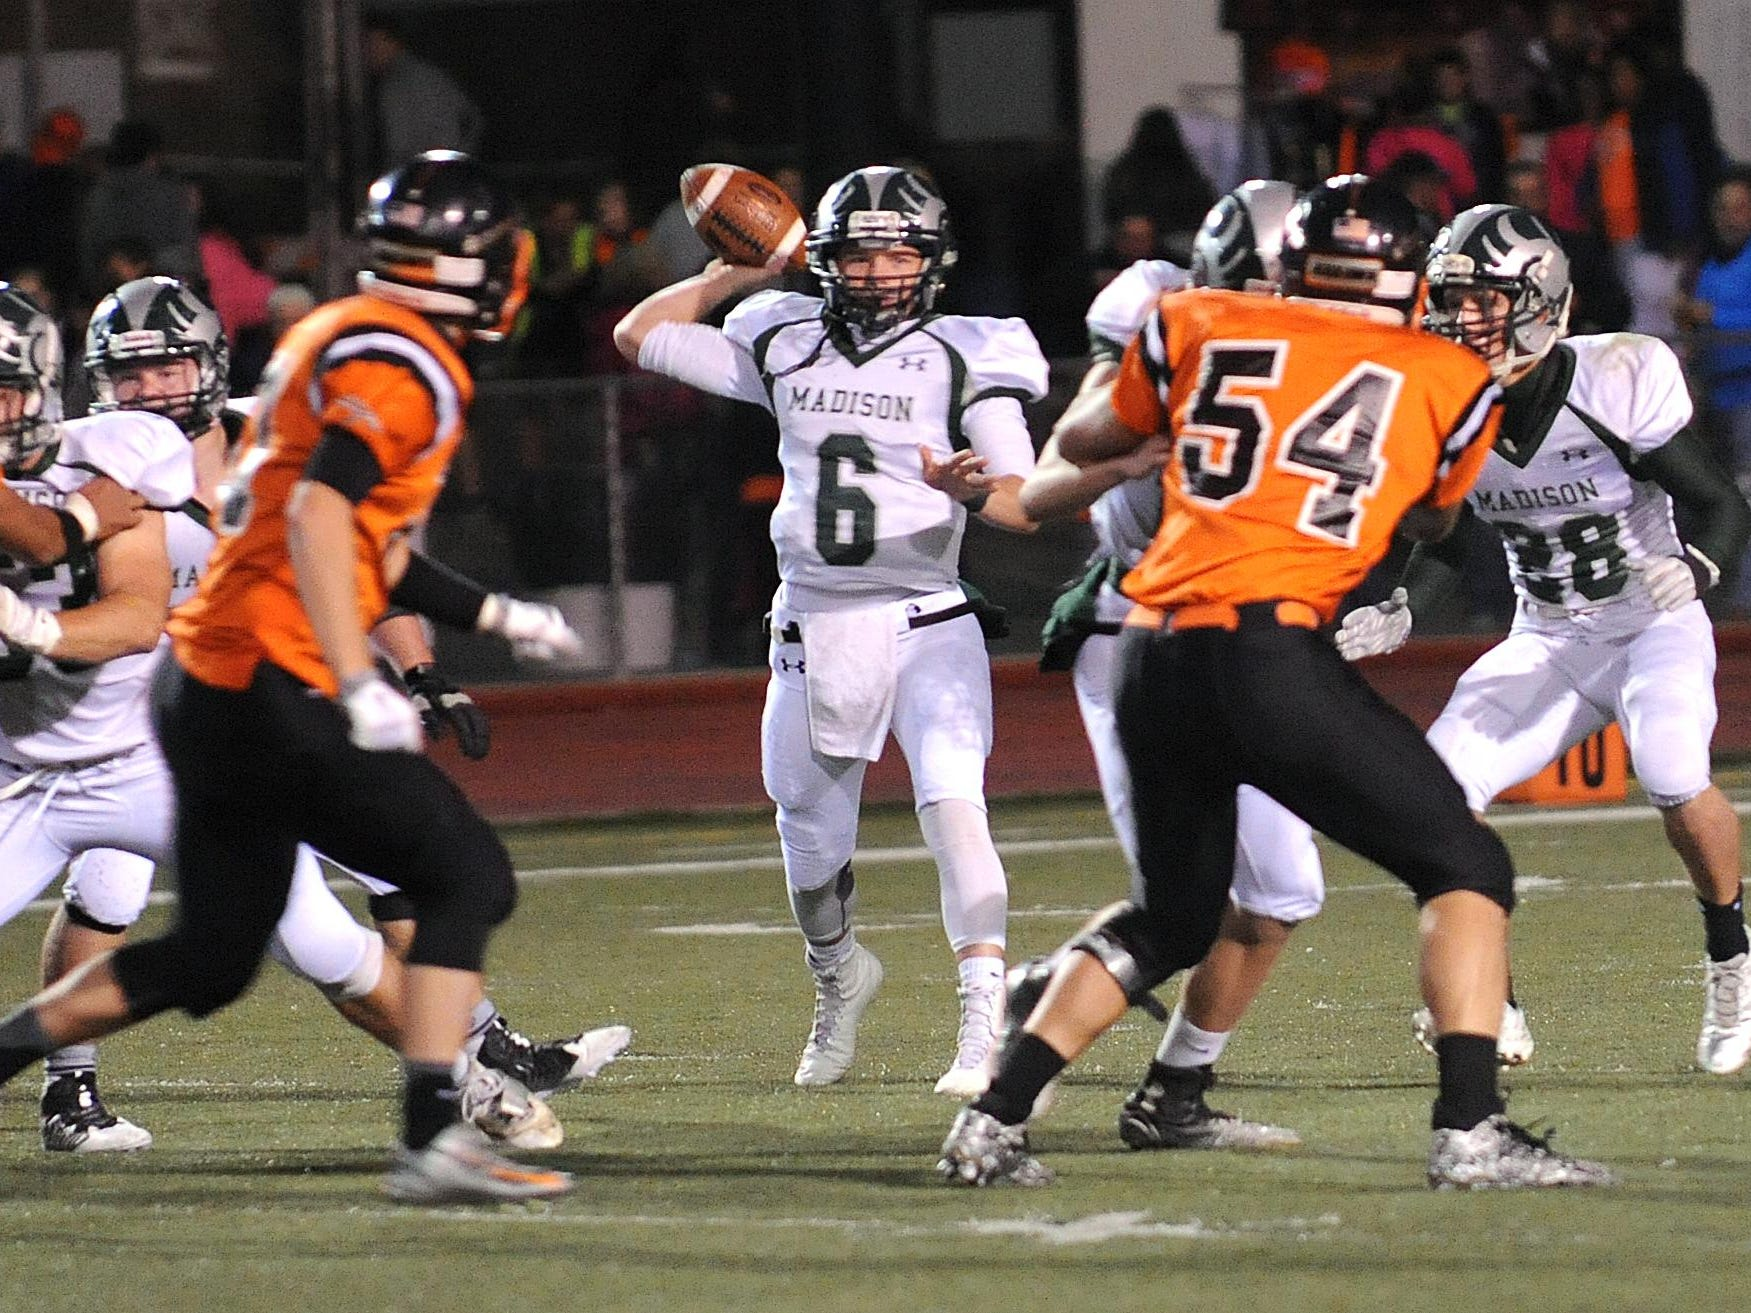 Madison's Trenton Vail throws a pass Friday night during their game against Ashland.